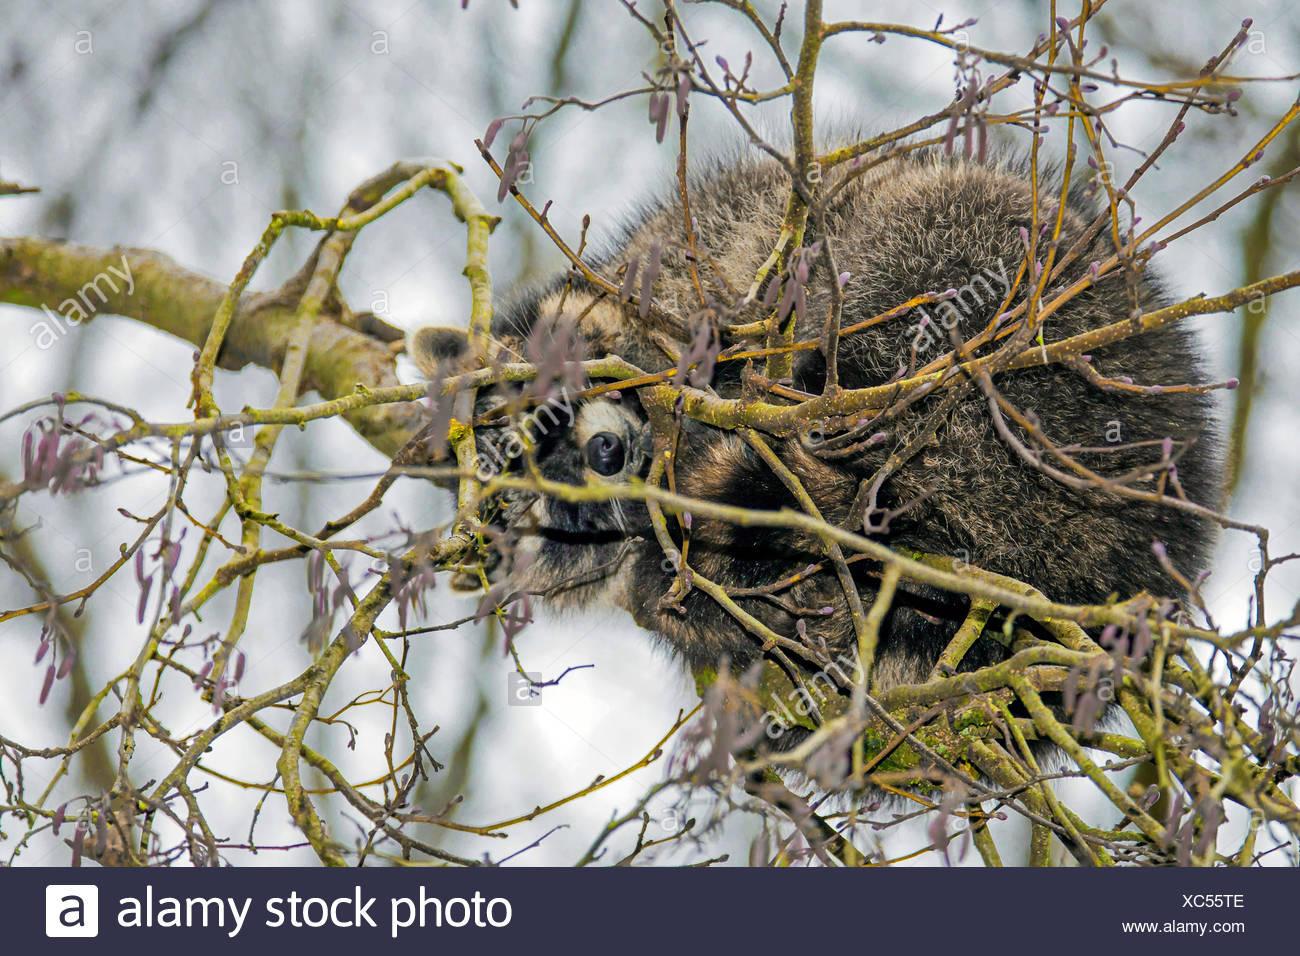 Waschbaer (Procyon lotor), schlaeft in einer Astgabel, Deutschland | common raccoon (Procyon lotor), sleeps in a branch fork, Ge - Stock Image